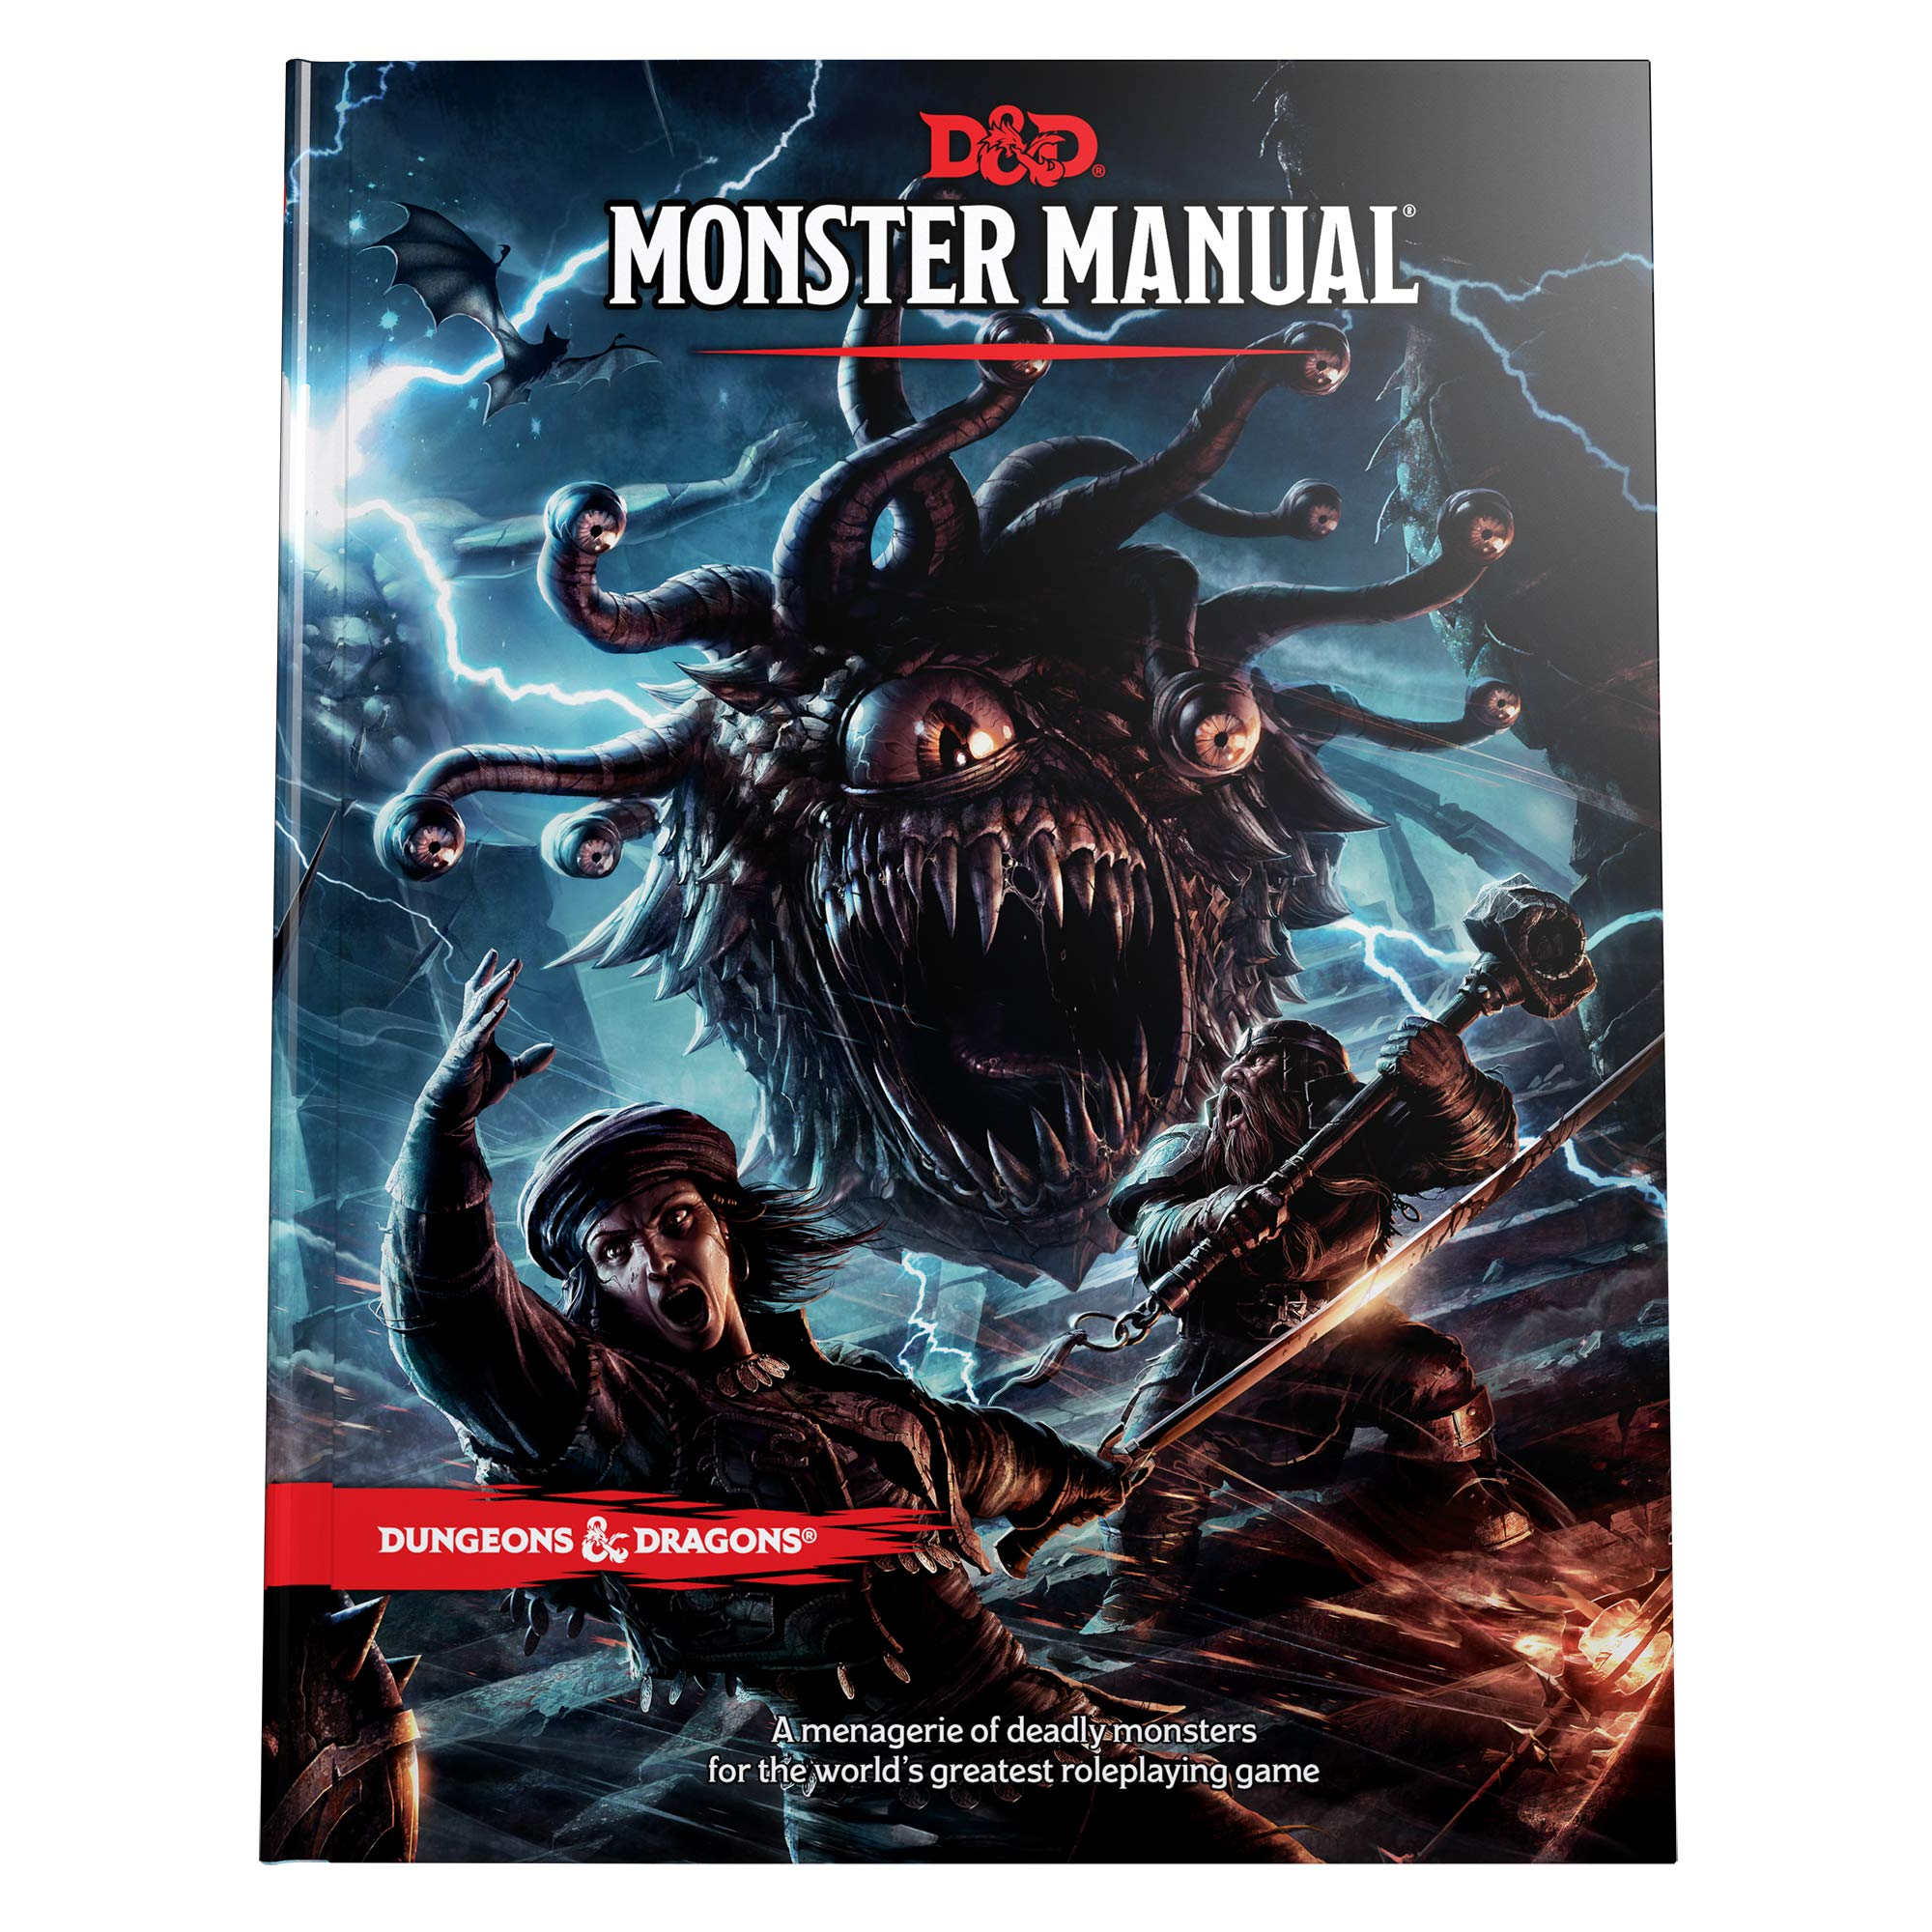 Dungeons & Dragons Monster Manual (Core Rulebook, D&D Roleplaying Game) WeeklyReviewer